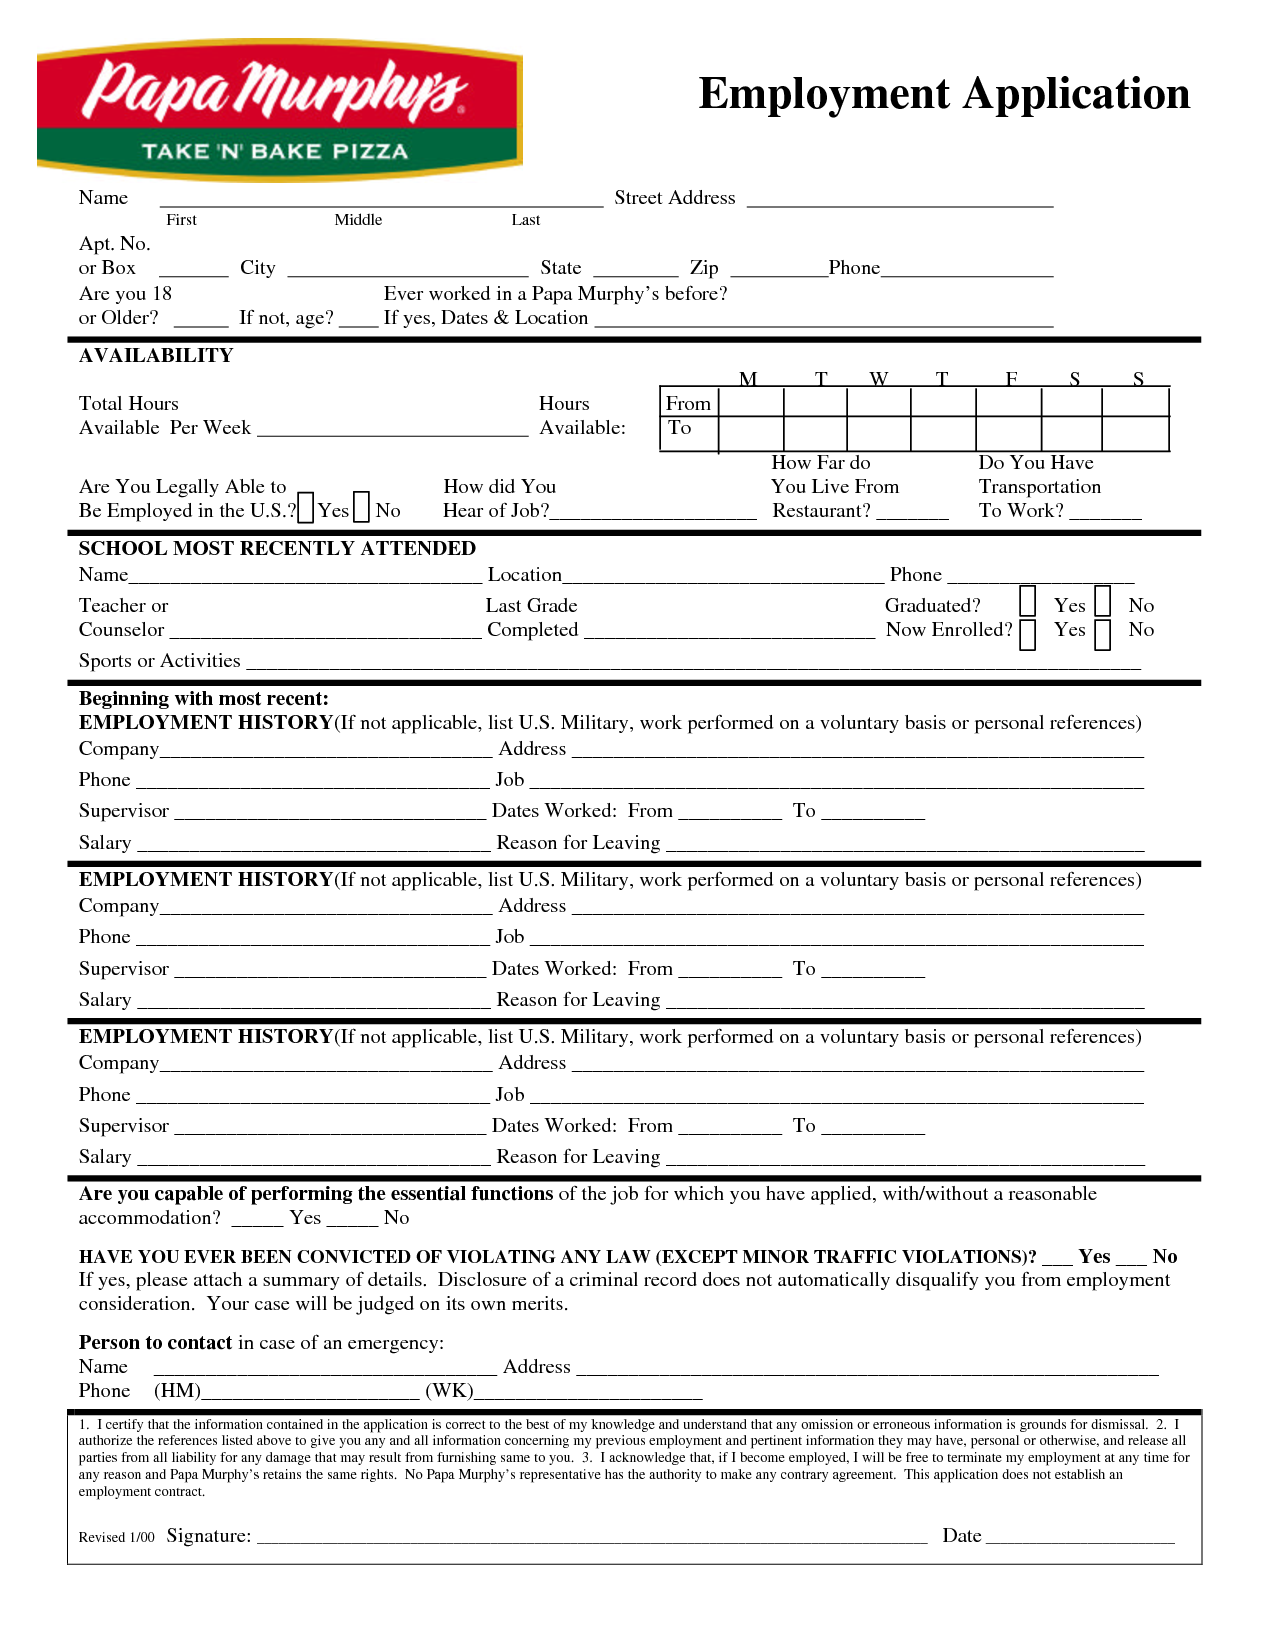 papa murphy s application print out papa murphy s employment